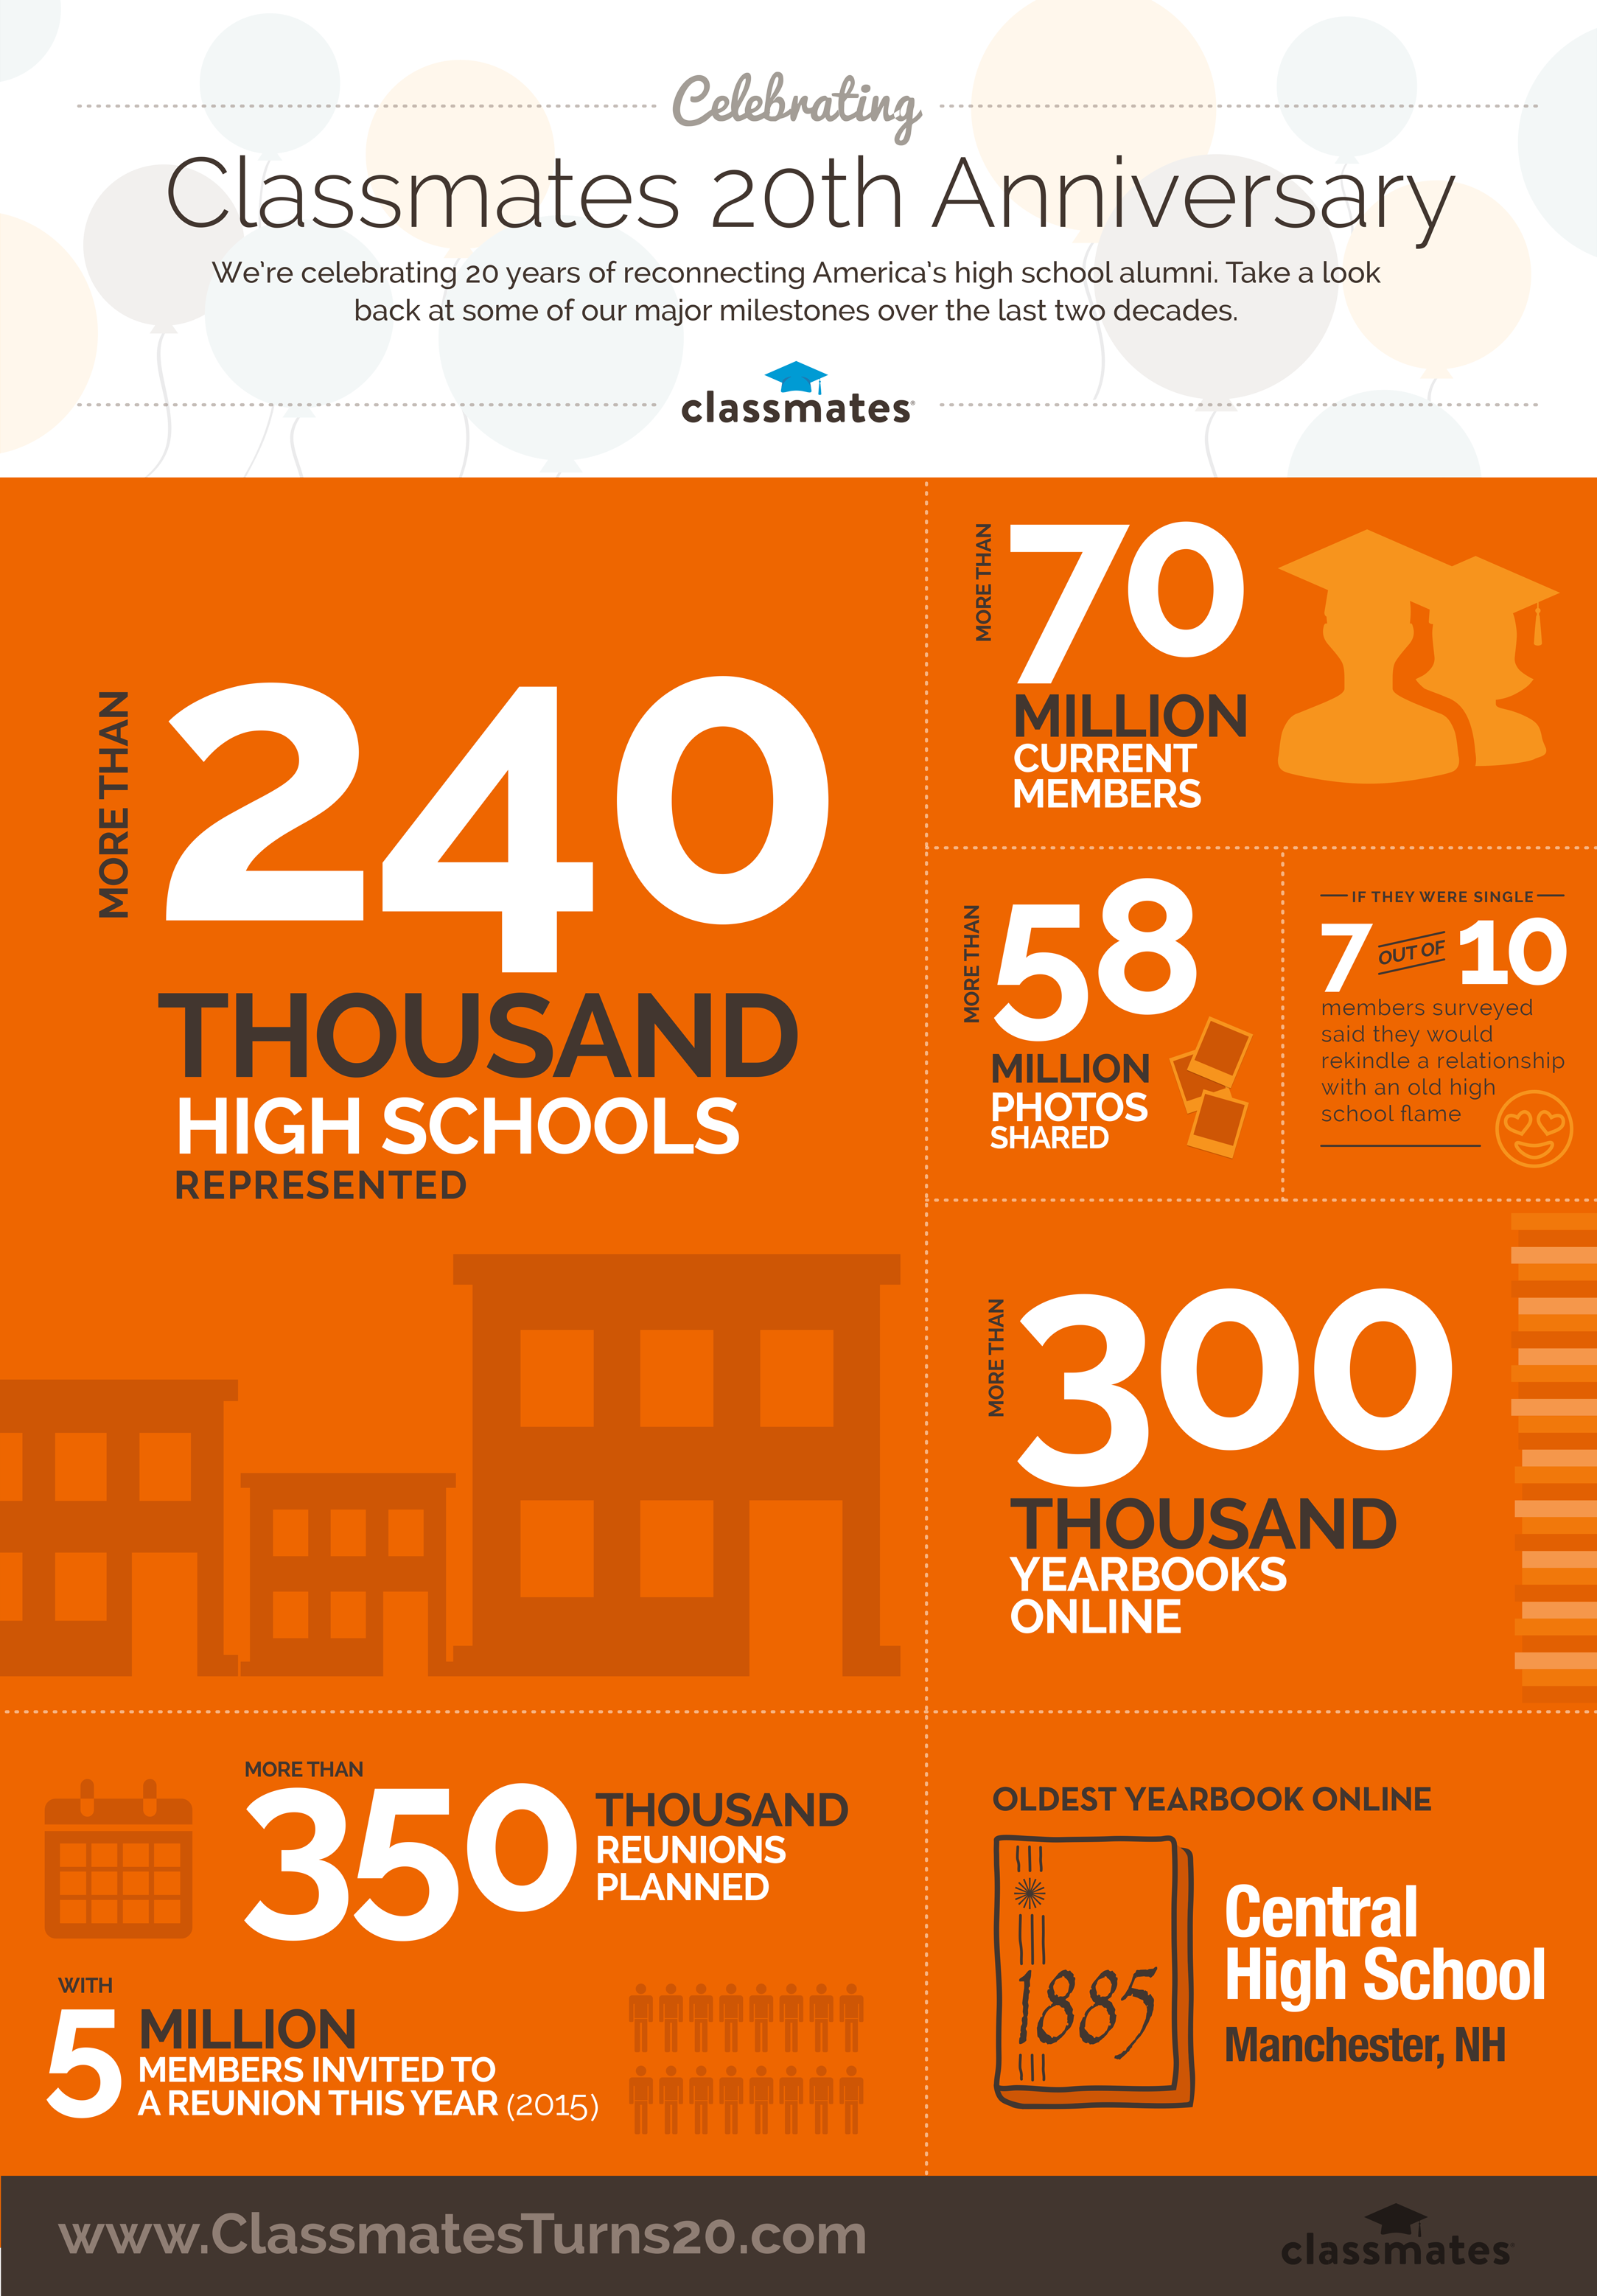 Classmates' 20th Anniversary Infographic